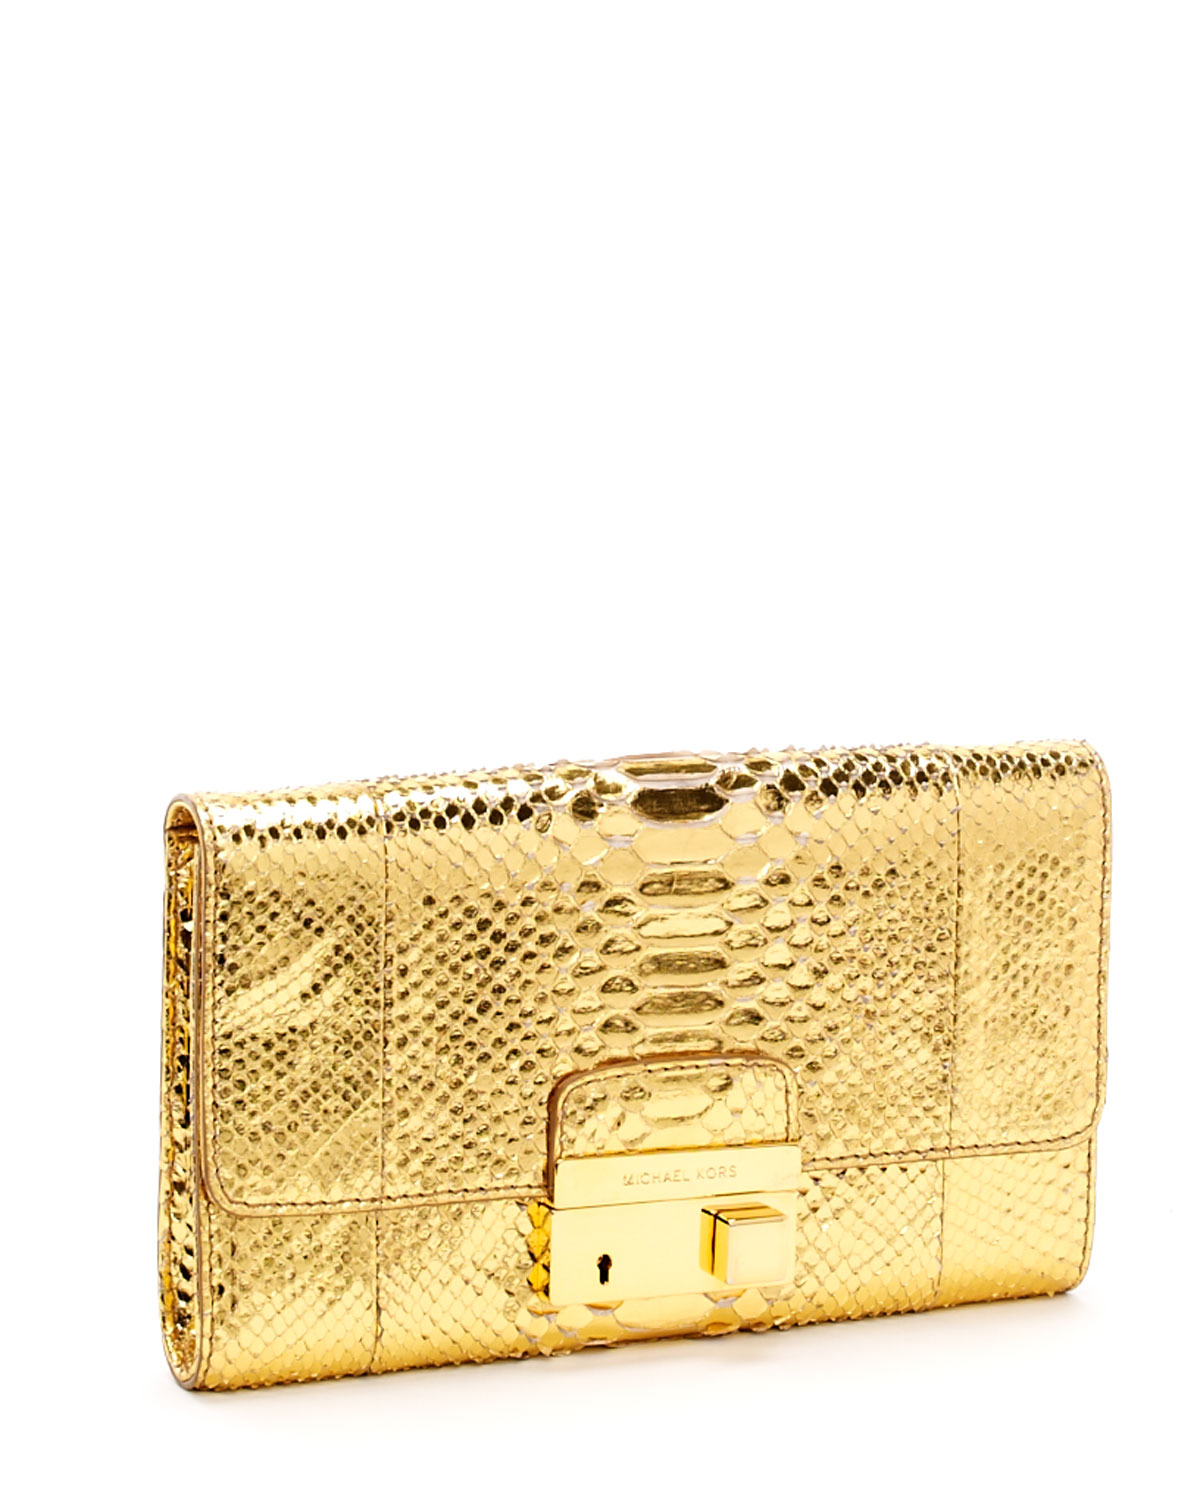 michael kors gold python gia clutch in metallic lyst. Black Bedroom Furniture Sets. Home Design Ideas